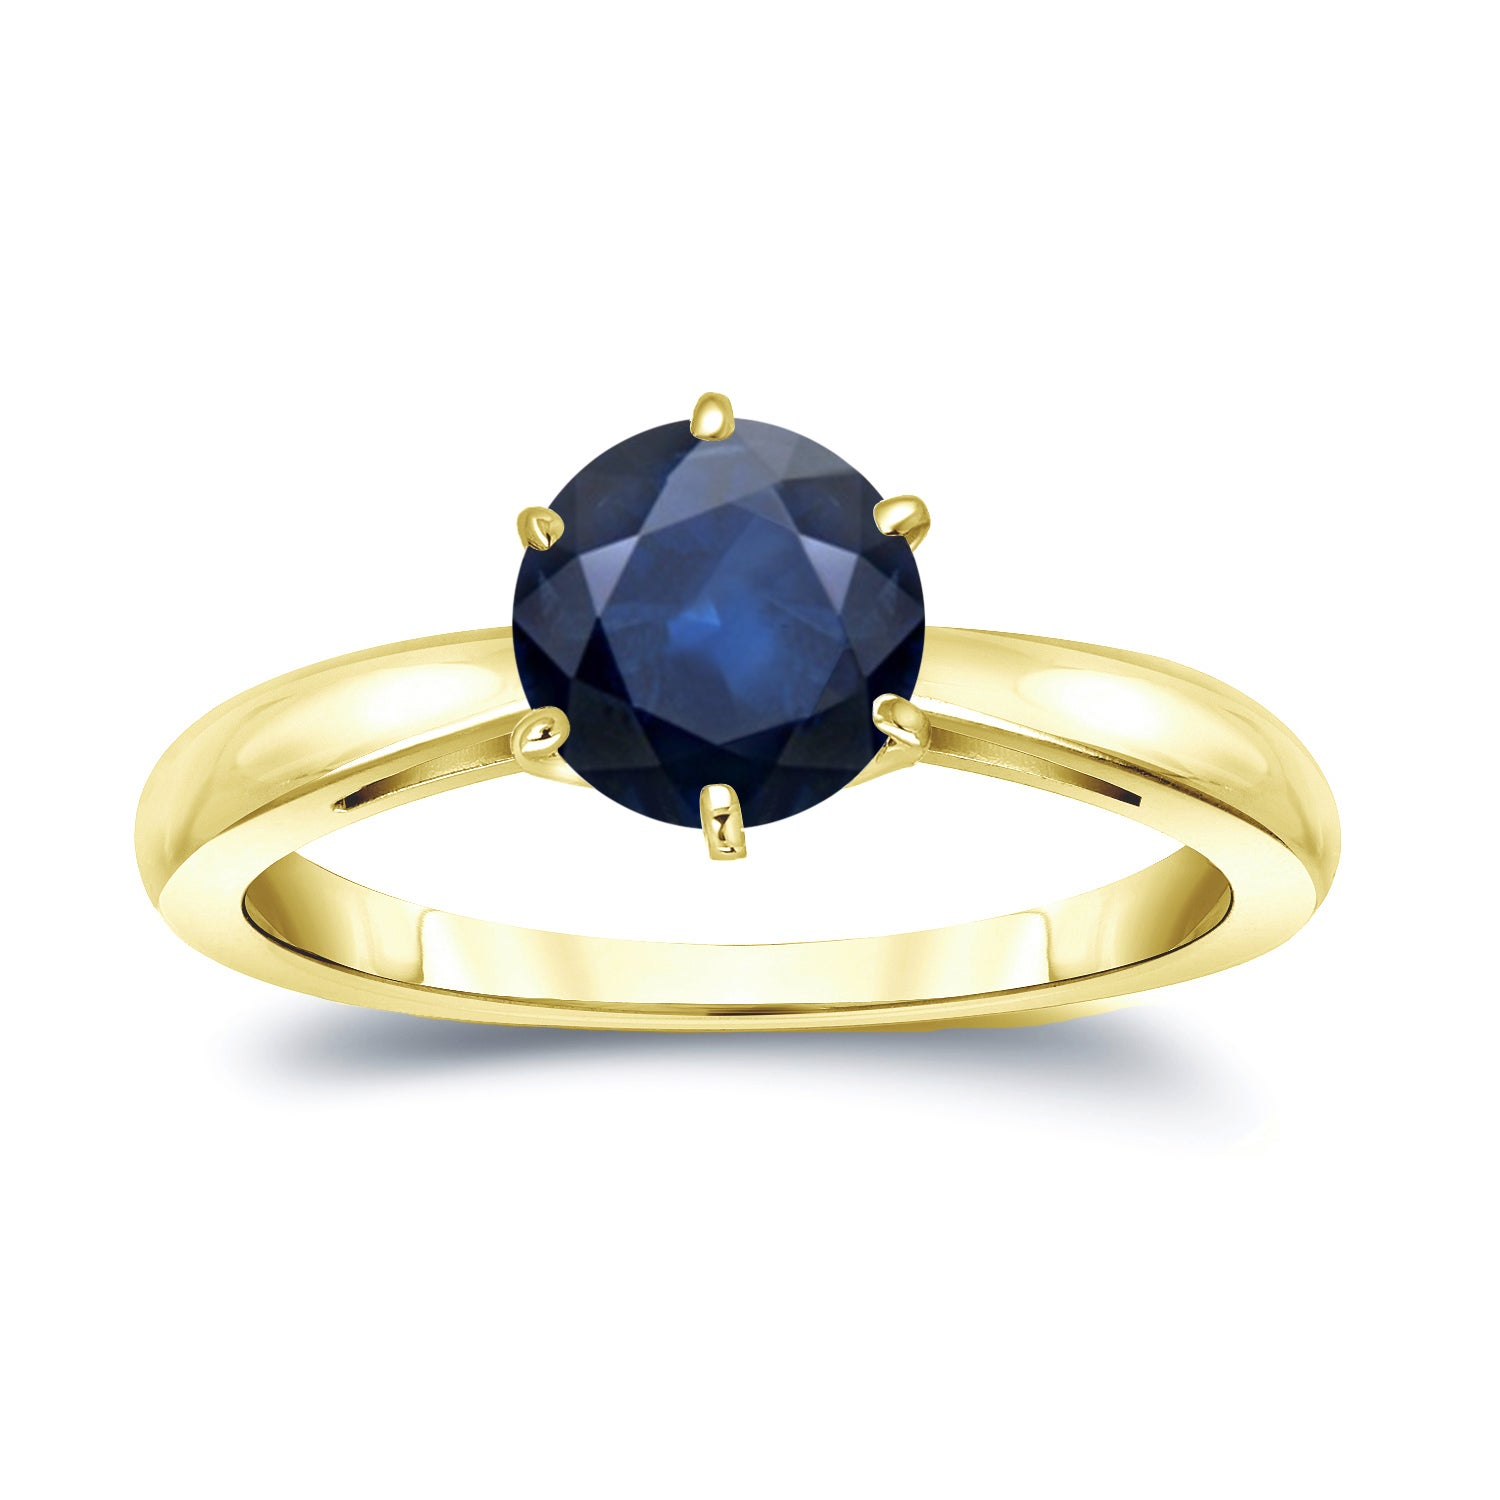 carat with drop yellow ct tear center engagement tw halo diamond double and sapphire bs detail in round ring shank gold